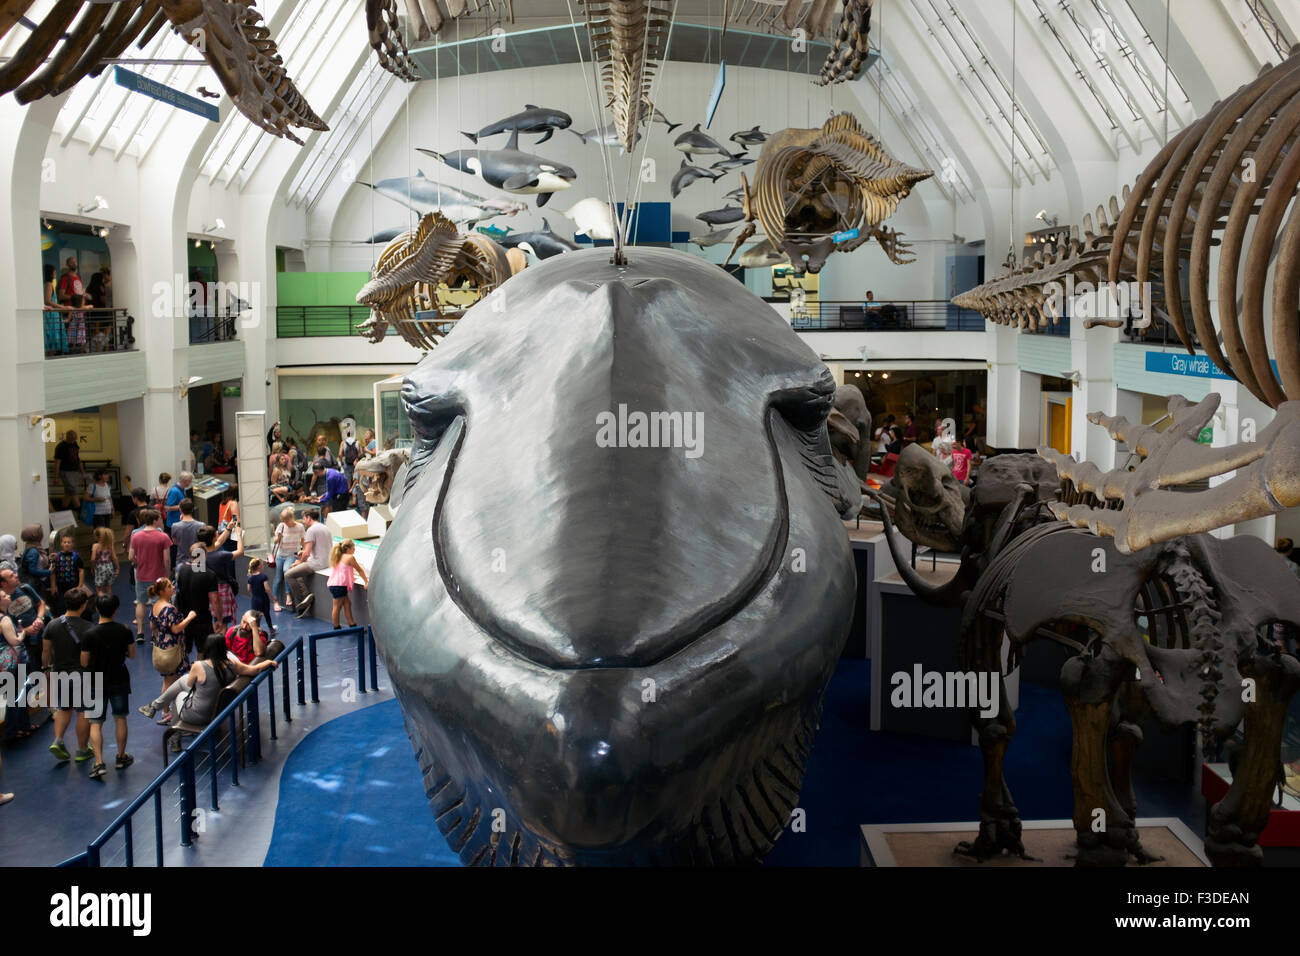 Lifesize models of mammals at The Natural History Museum in London. - Stock Image